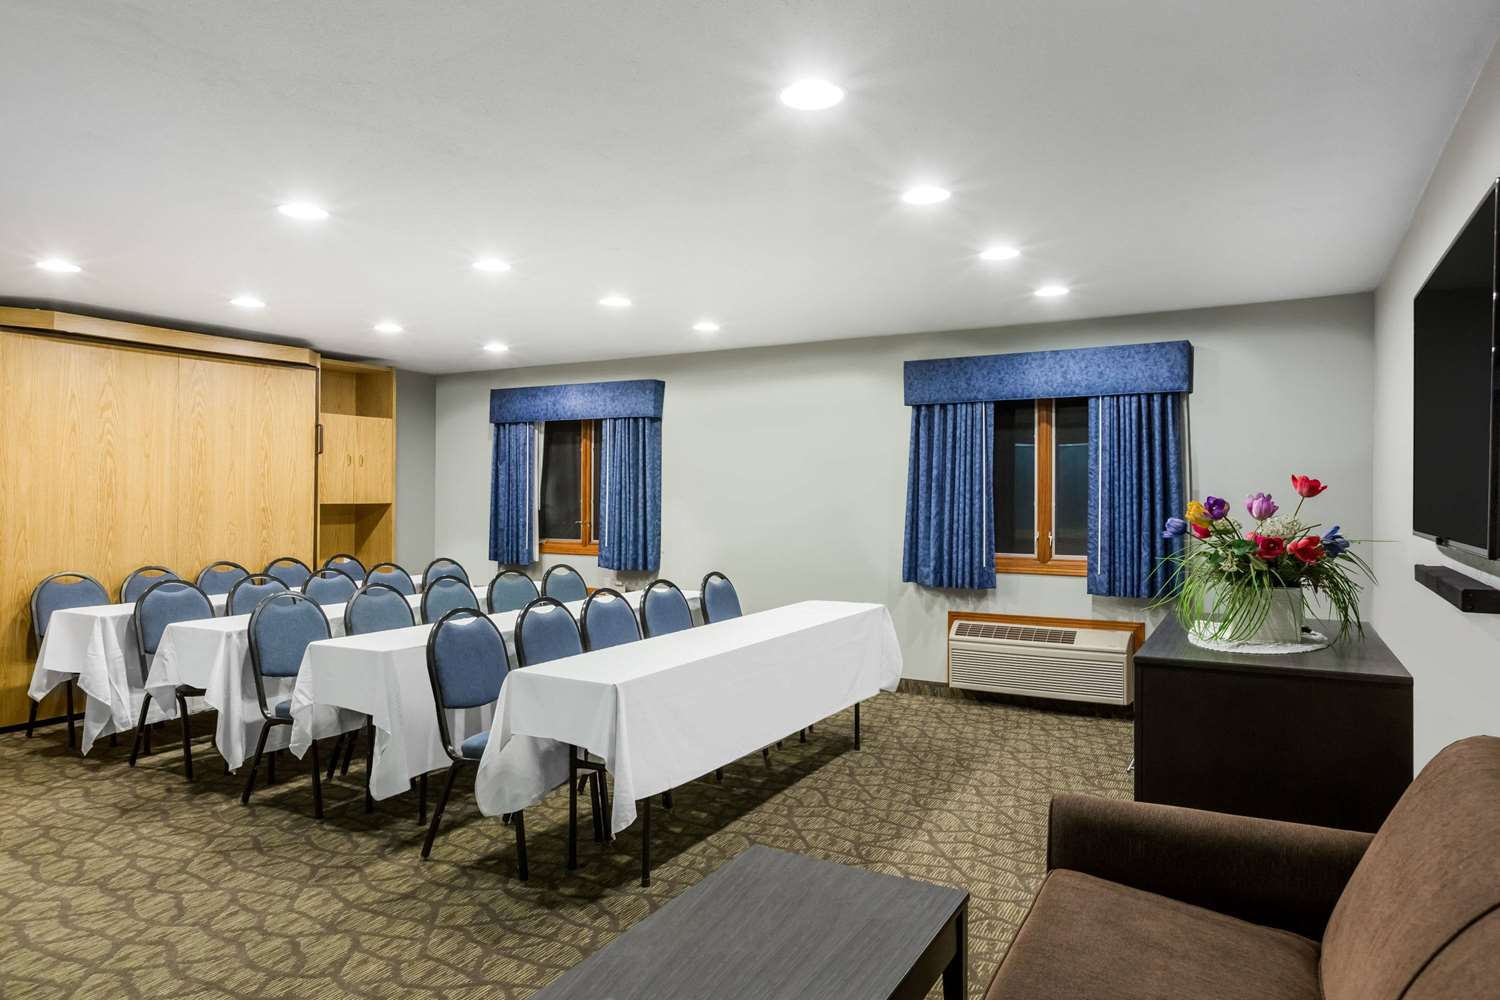 Meeting Facilities - Baymont Inn & Suites Pella